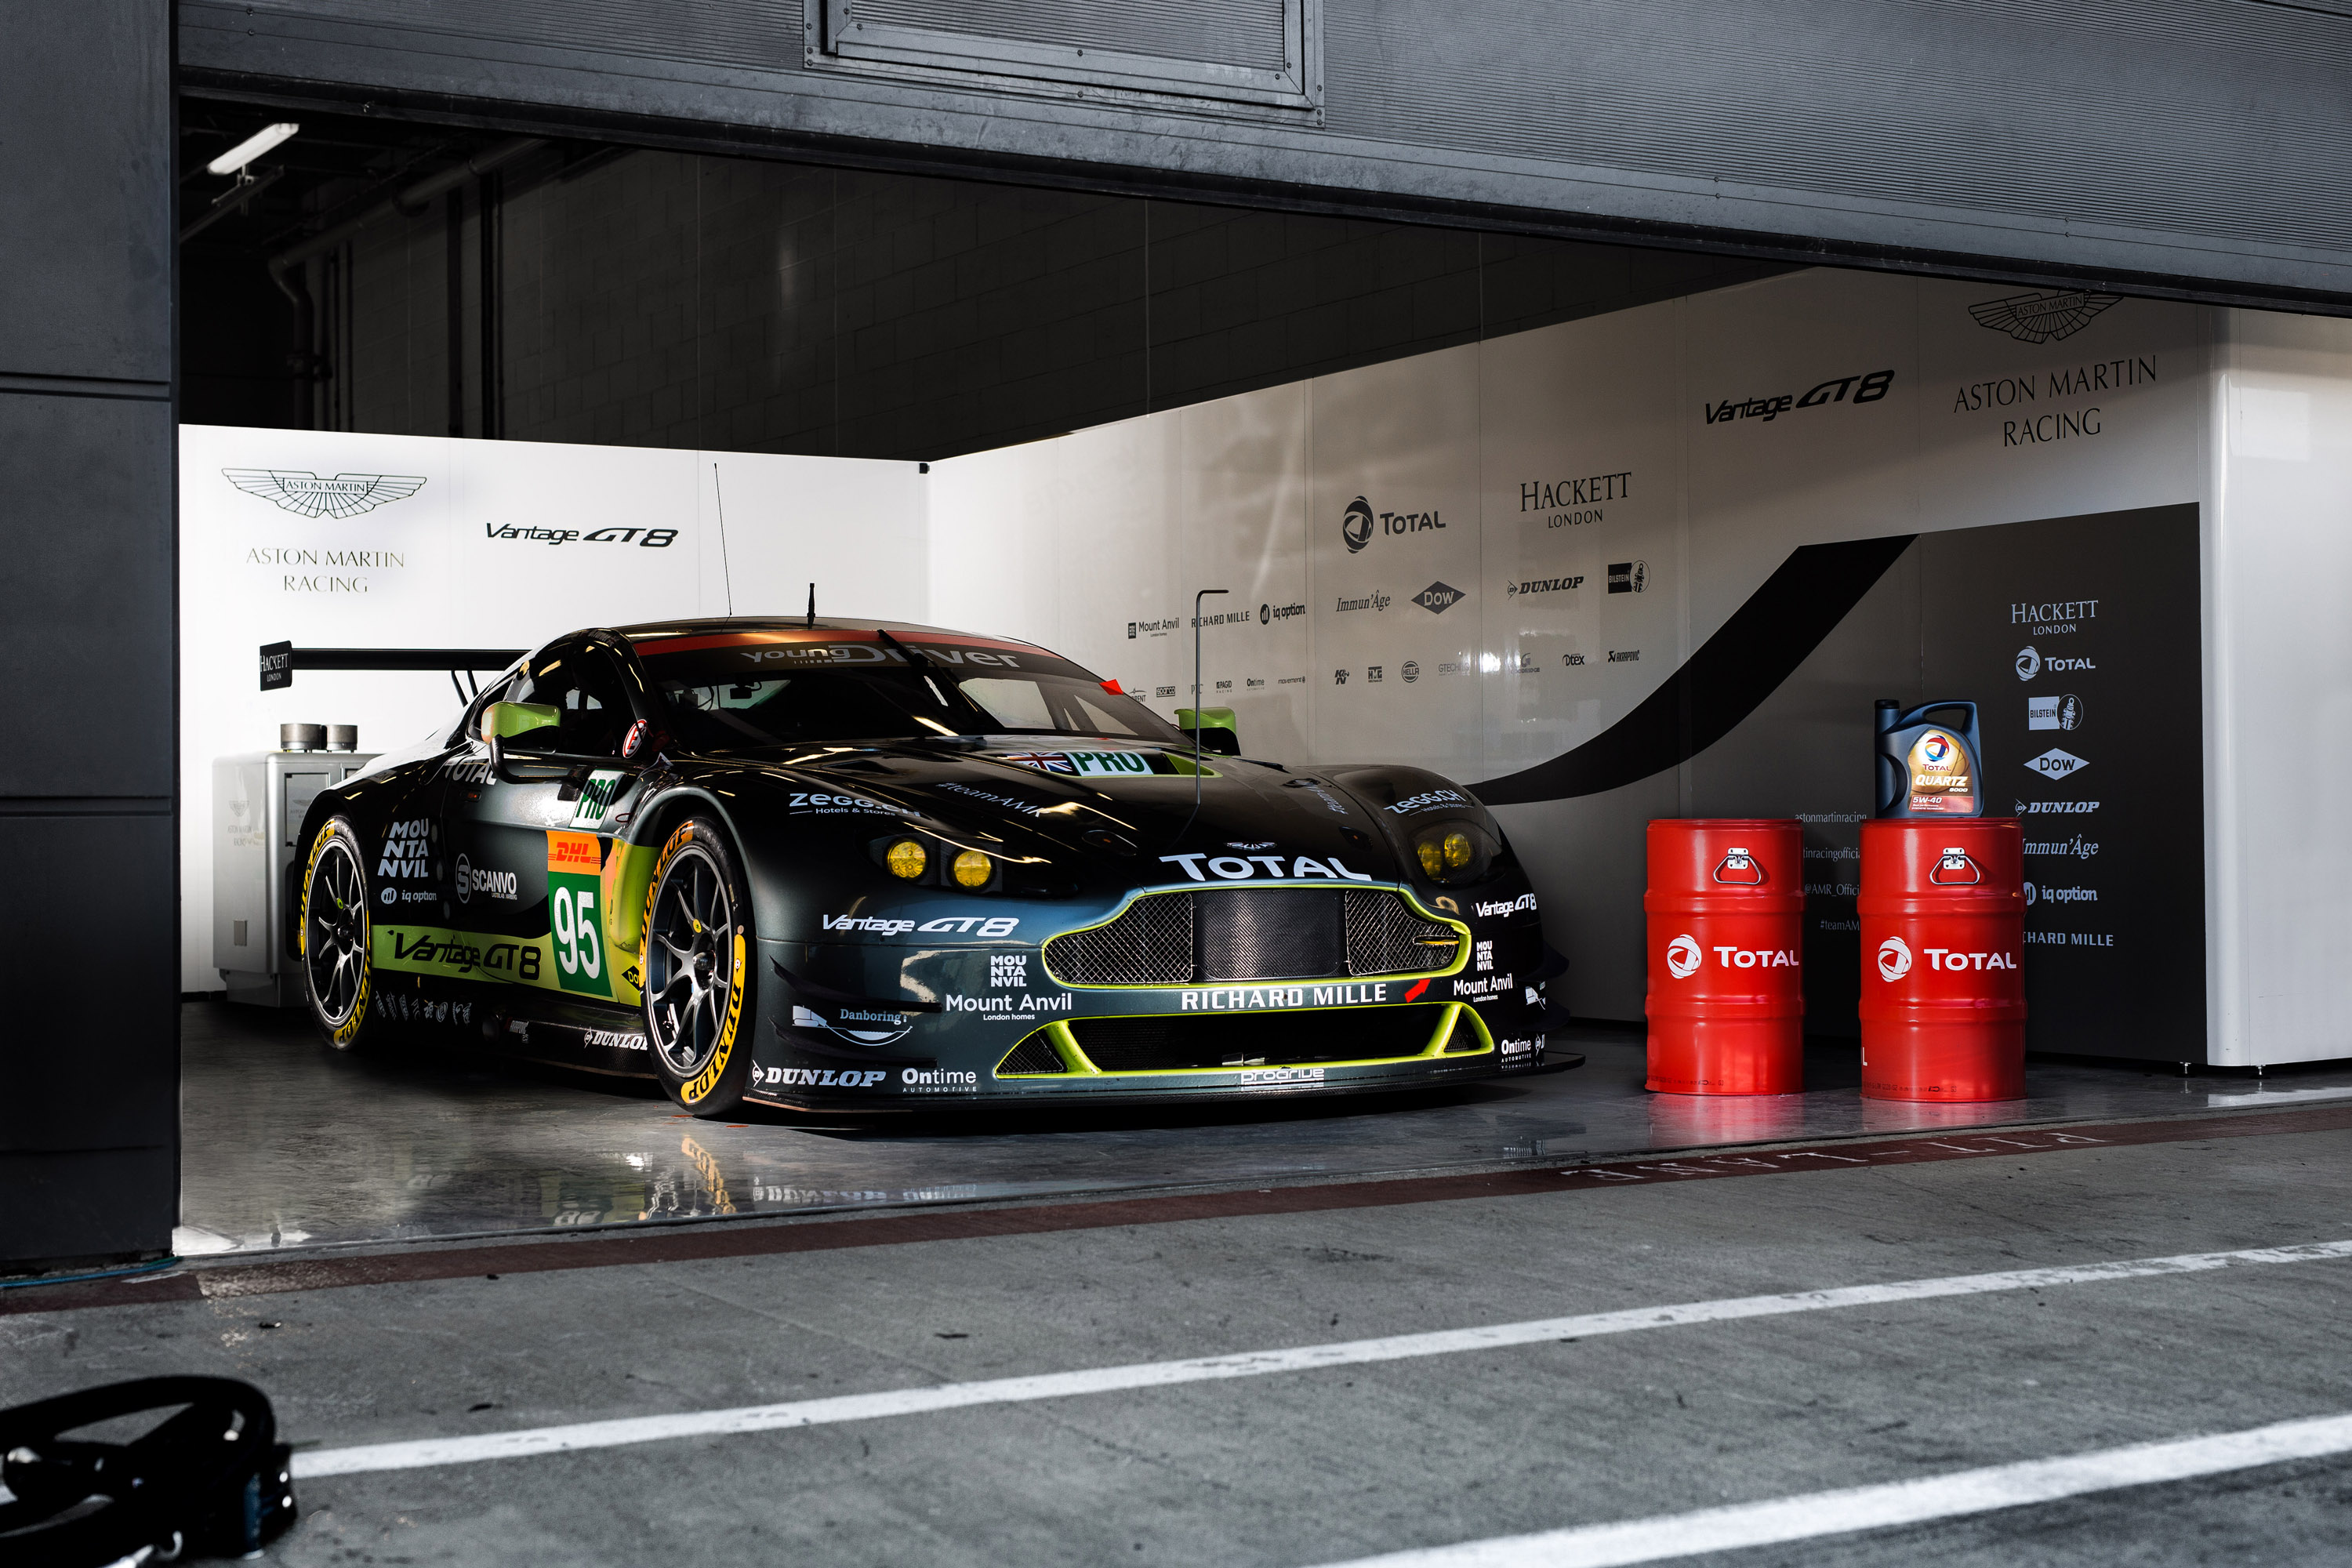 Aston Martin and Total would explore the world of WEC together